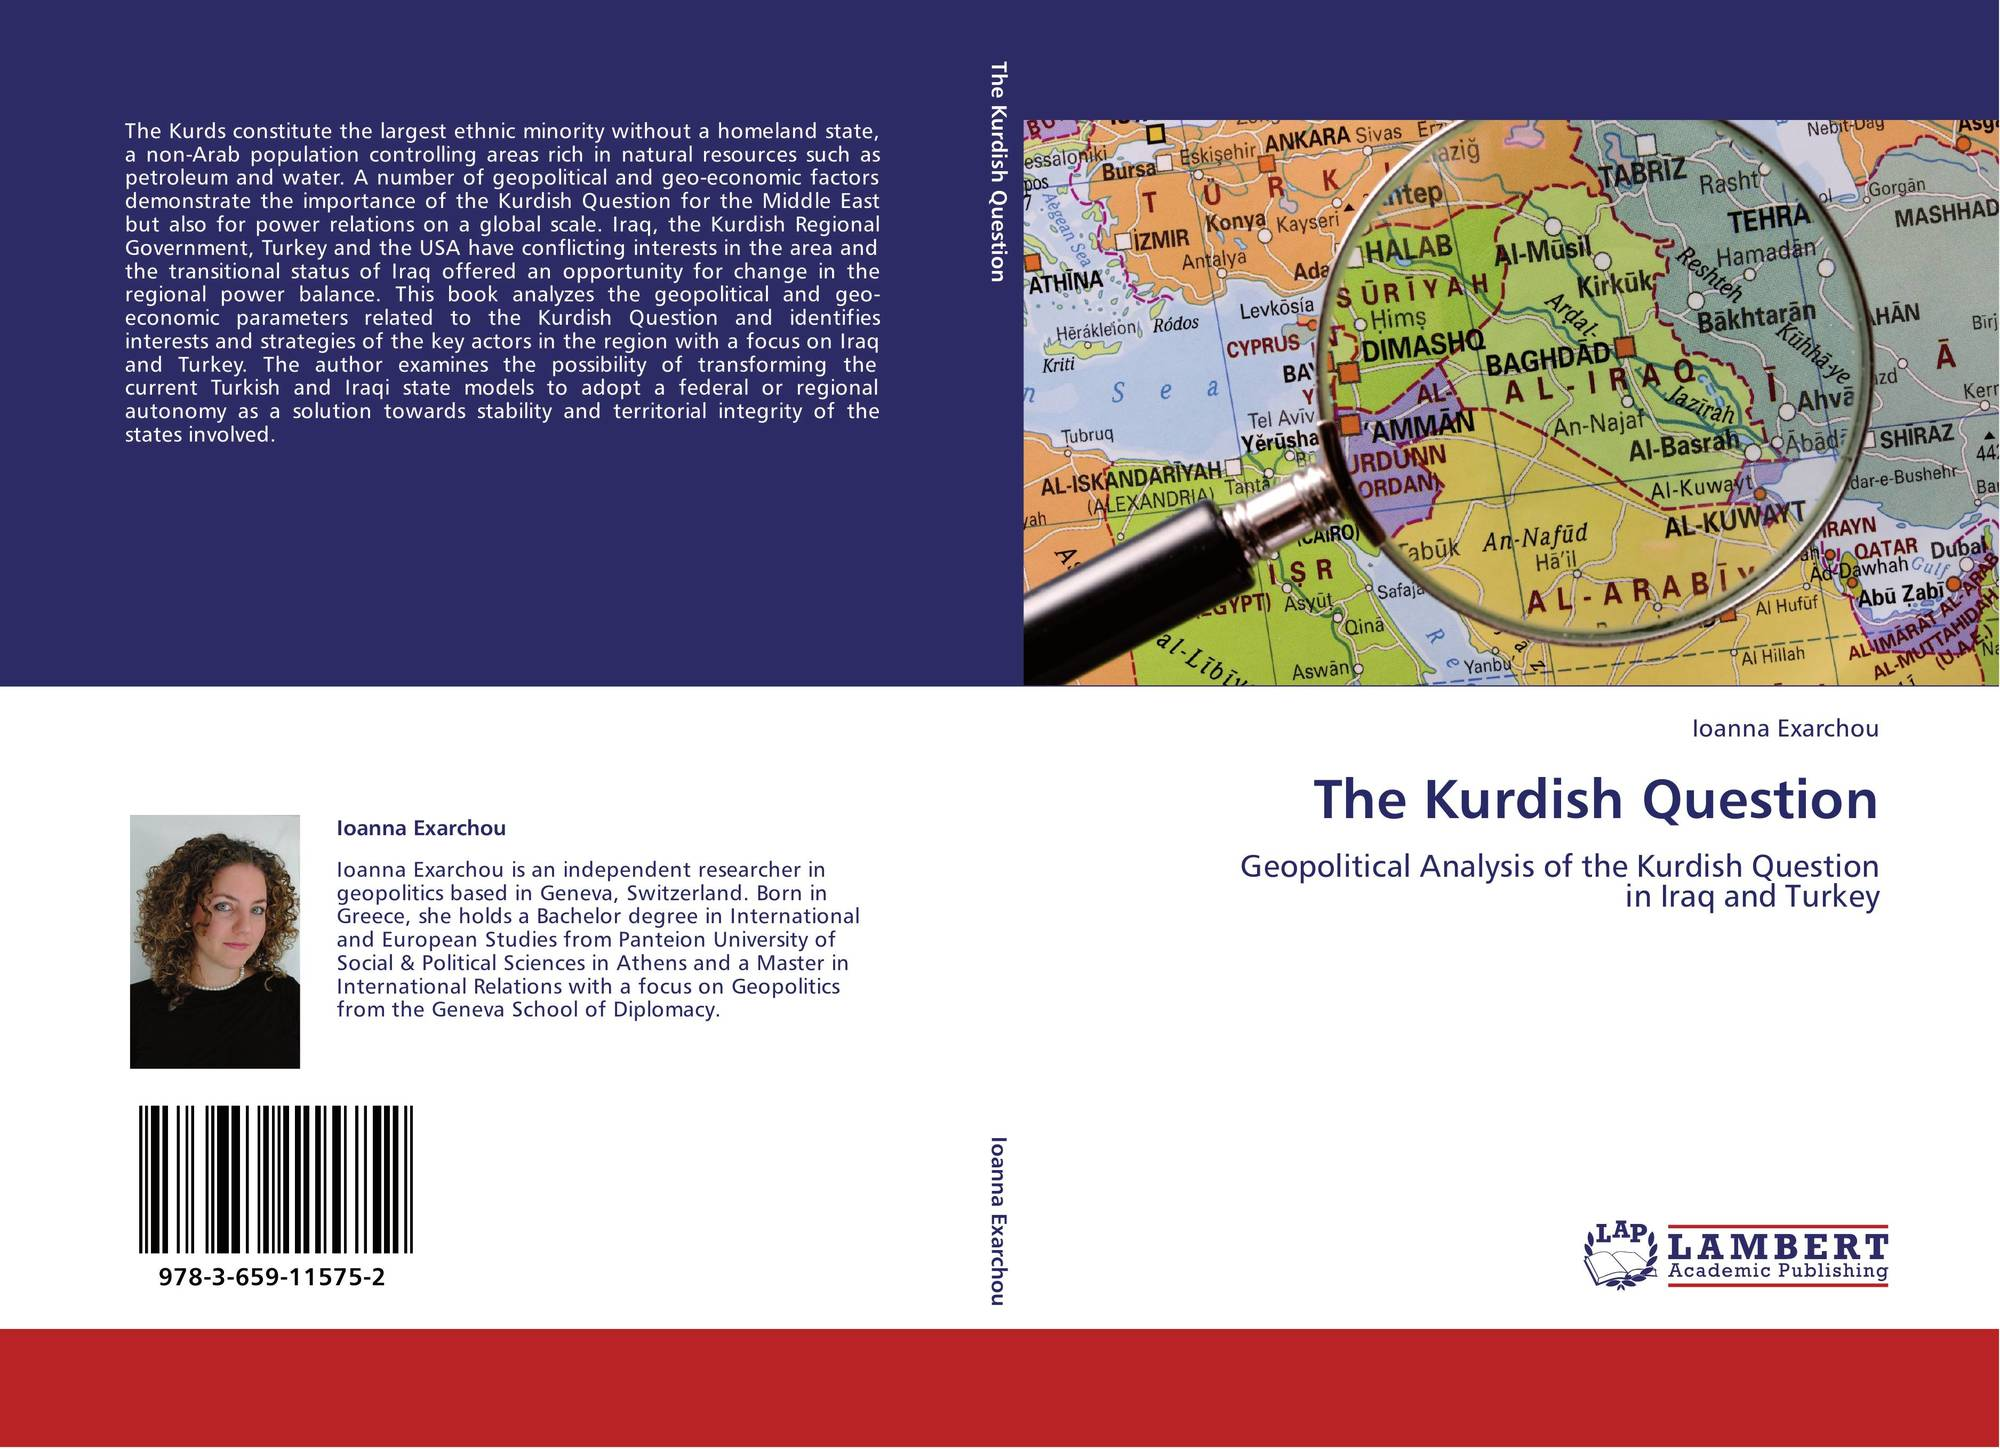 an analysis of the society of the kurds in europe Having support from both russia and the west, the kurds could potentially become a uniting force capable of bringing russia and the us closer together in their fight against isis in syria.